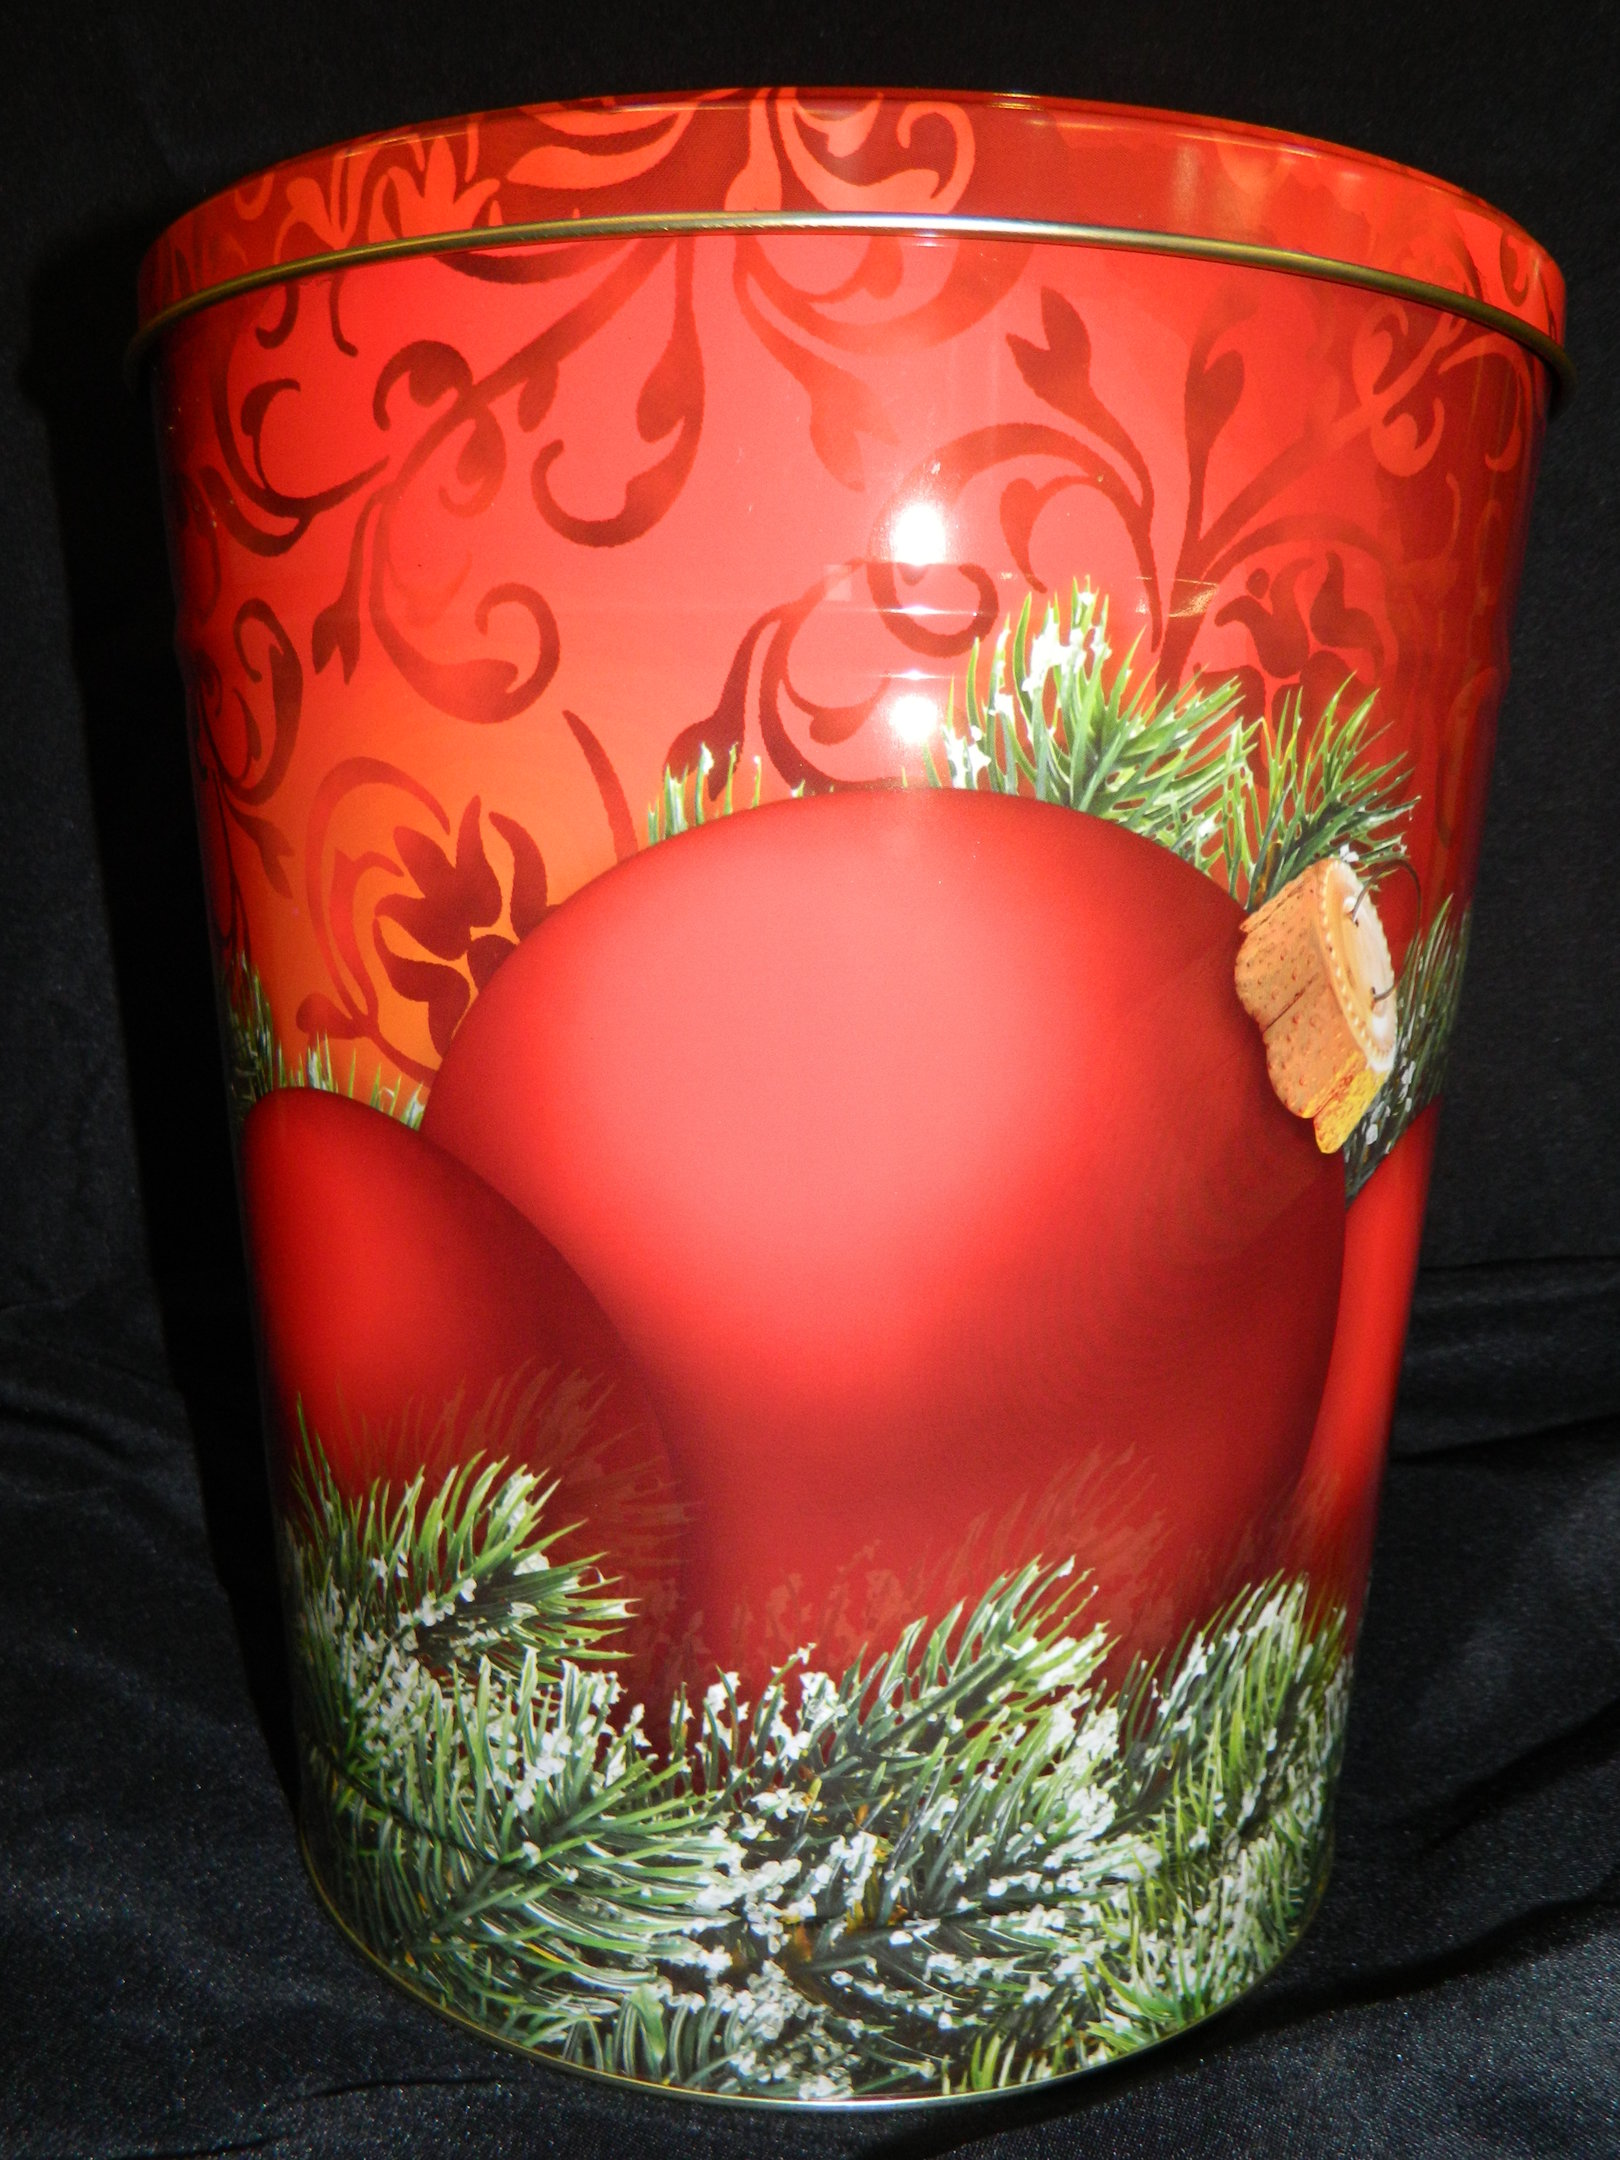 3.5 Gal Red Ornaments on Pine Popcorn Tin